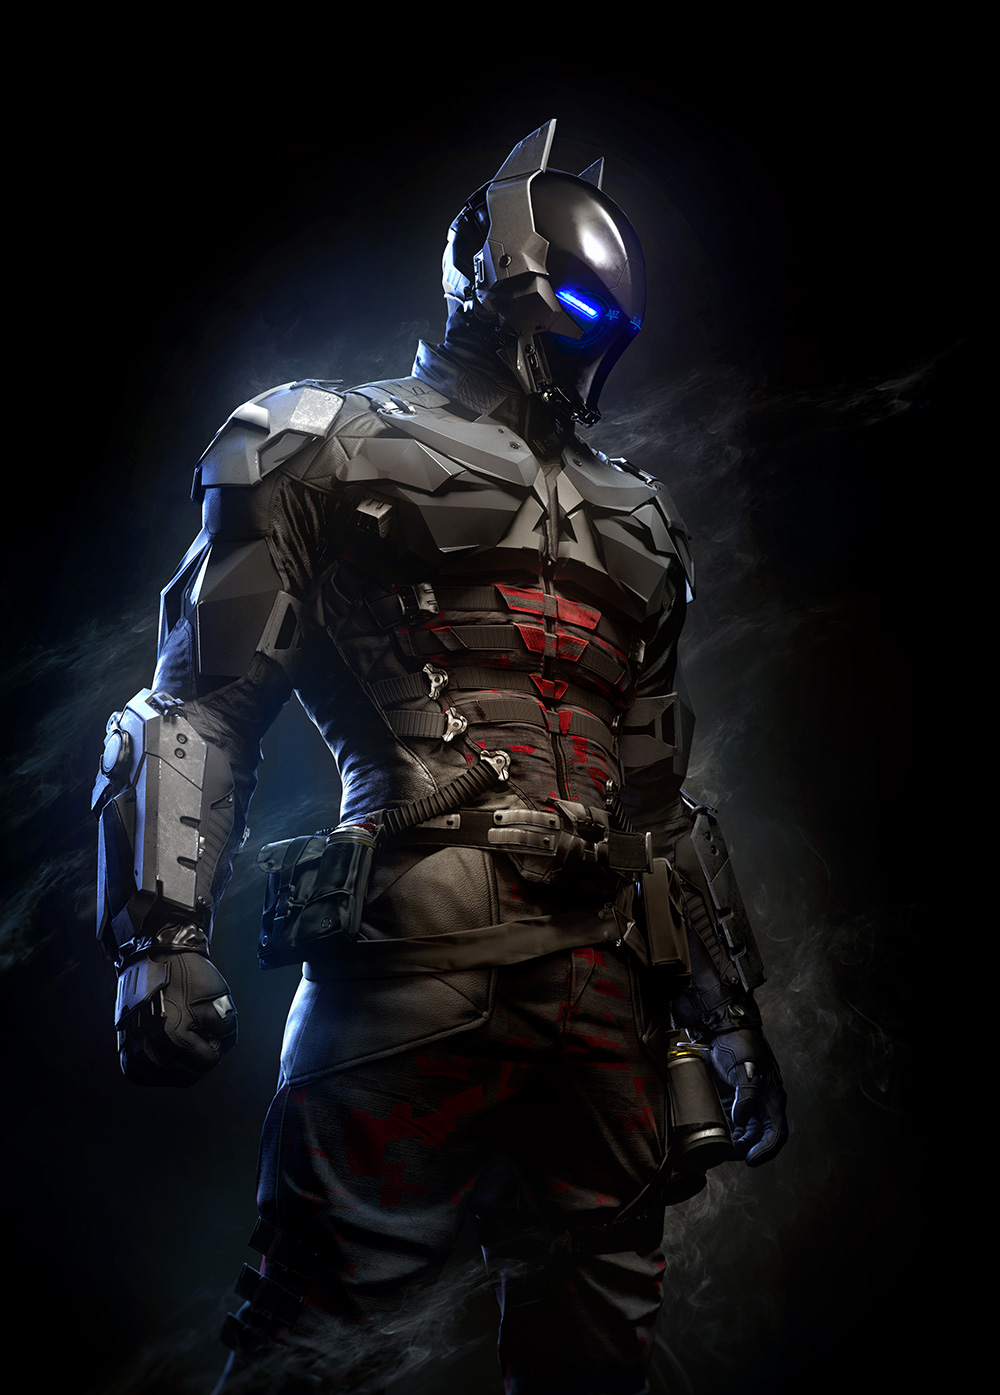 ArkhamKnight_render